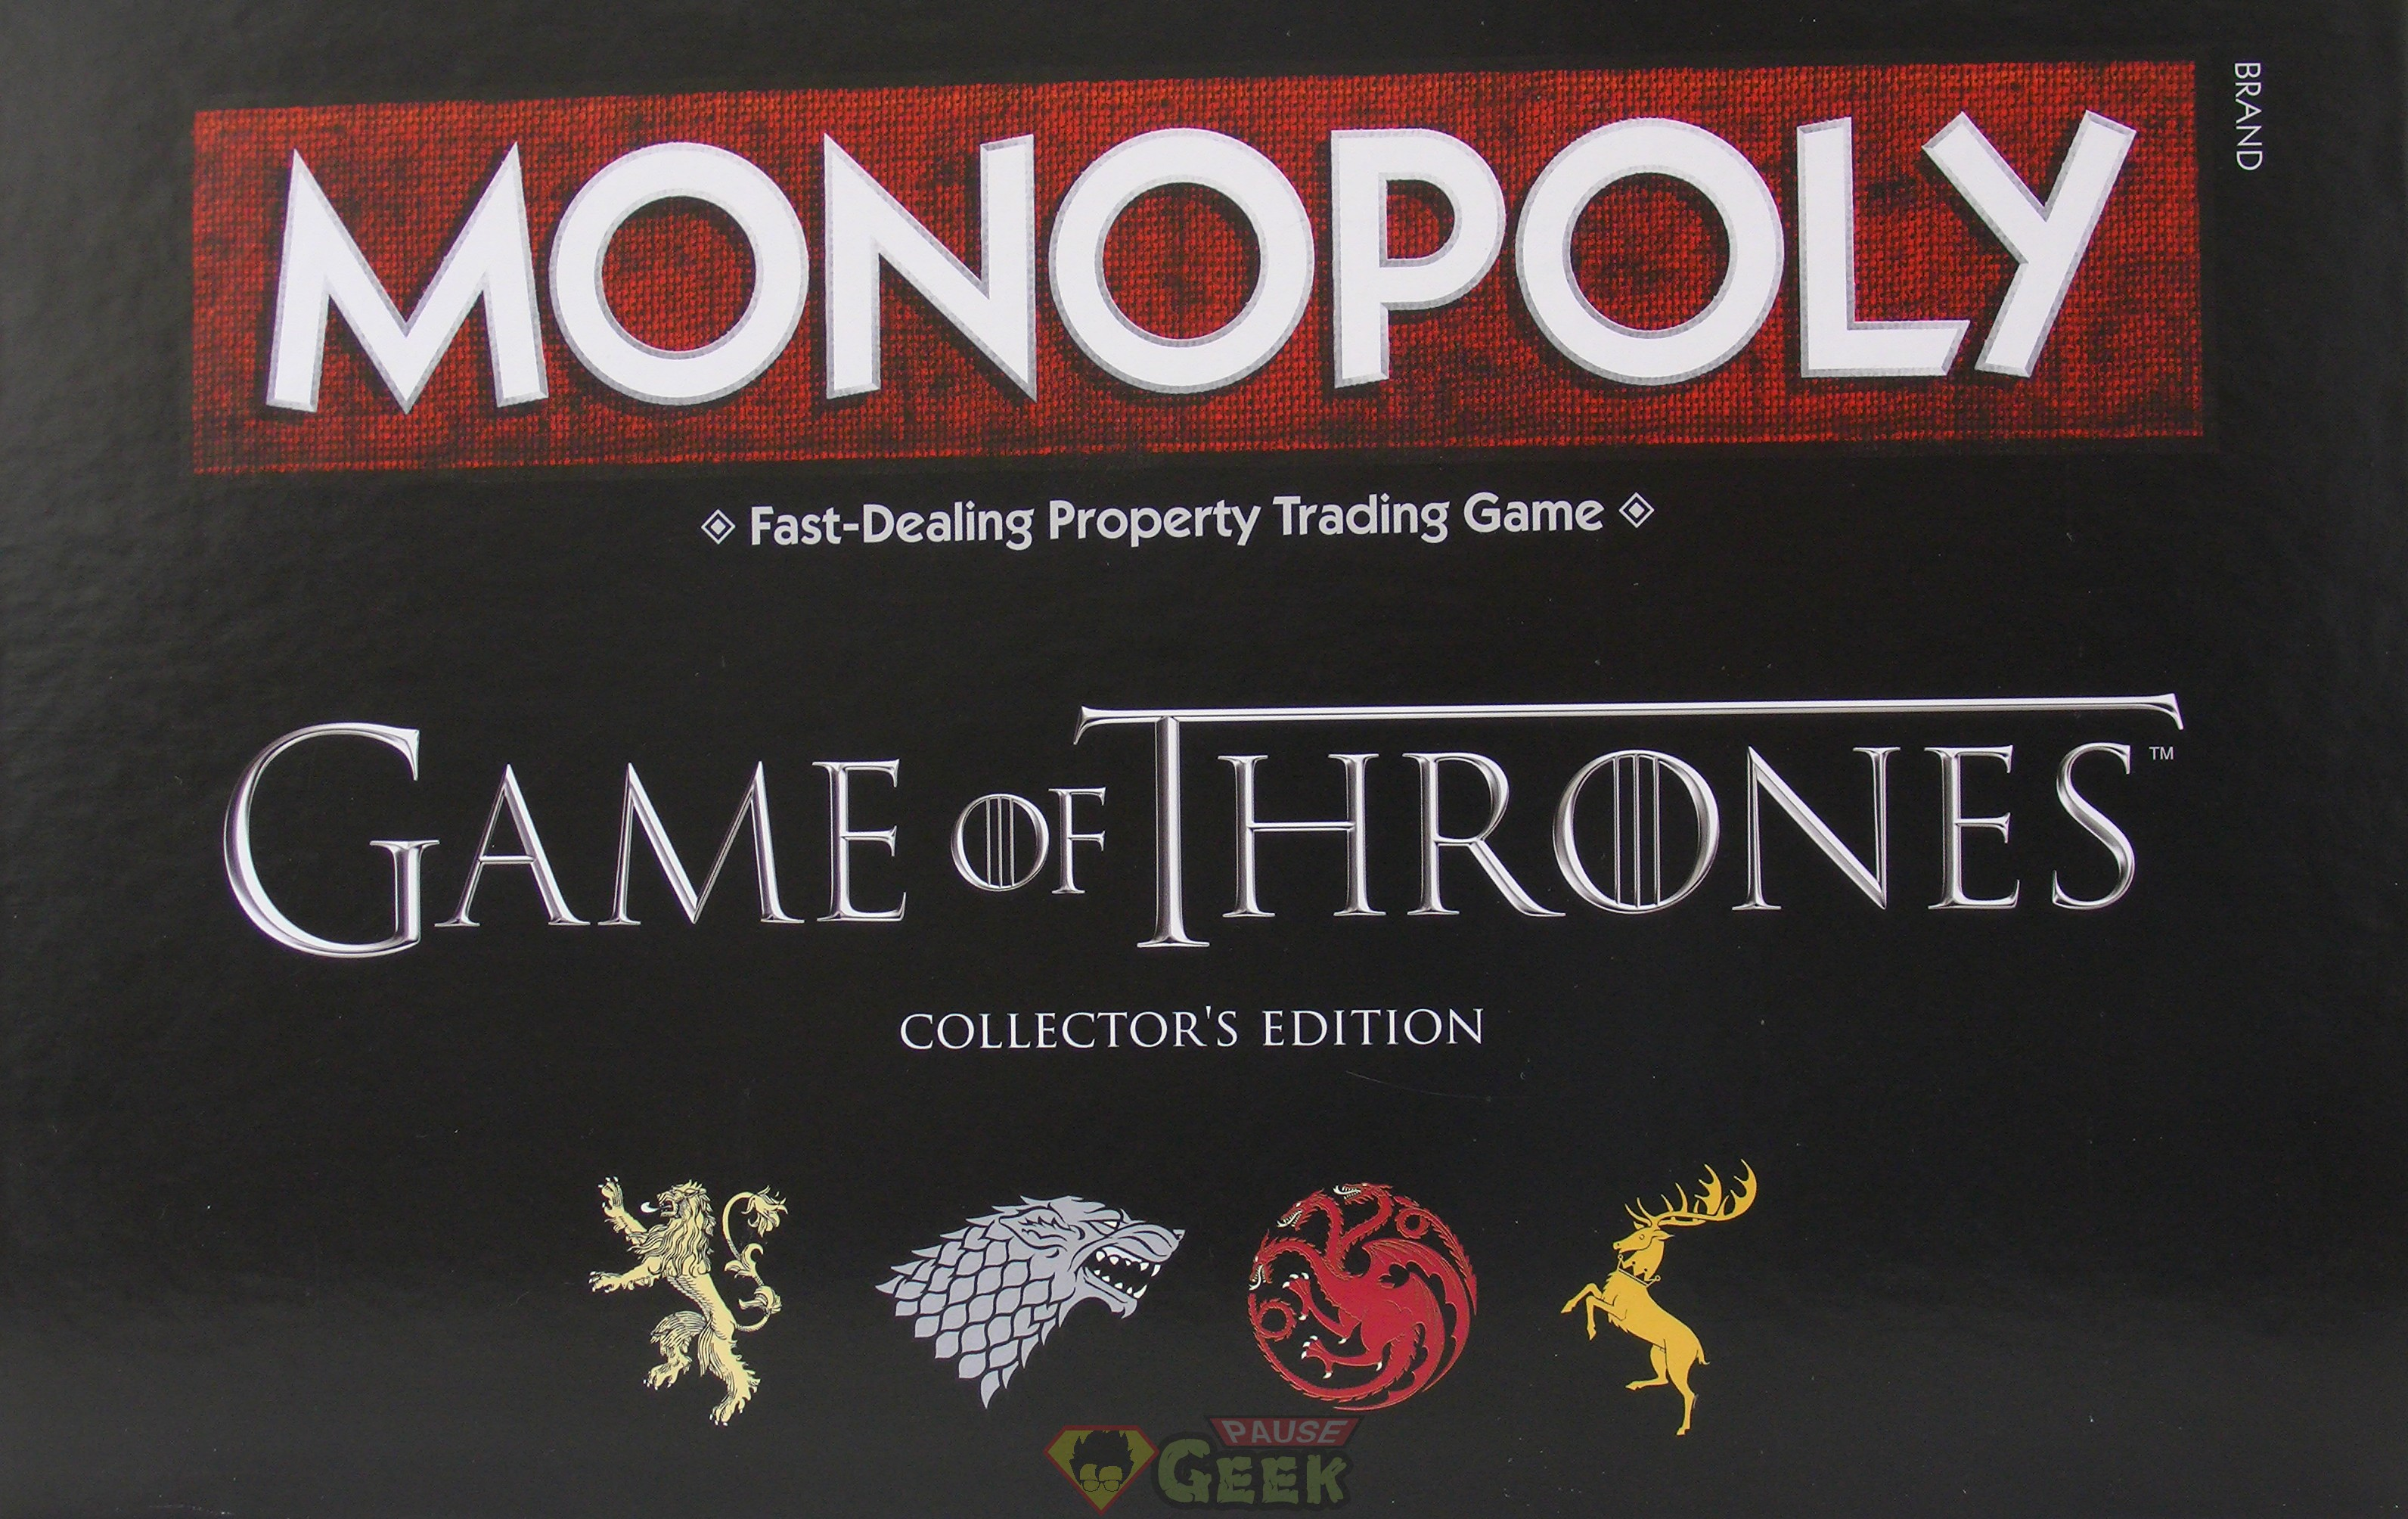 Un ensemble de goodies Game of Thrones indispensable pour bien débuter